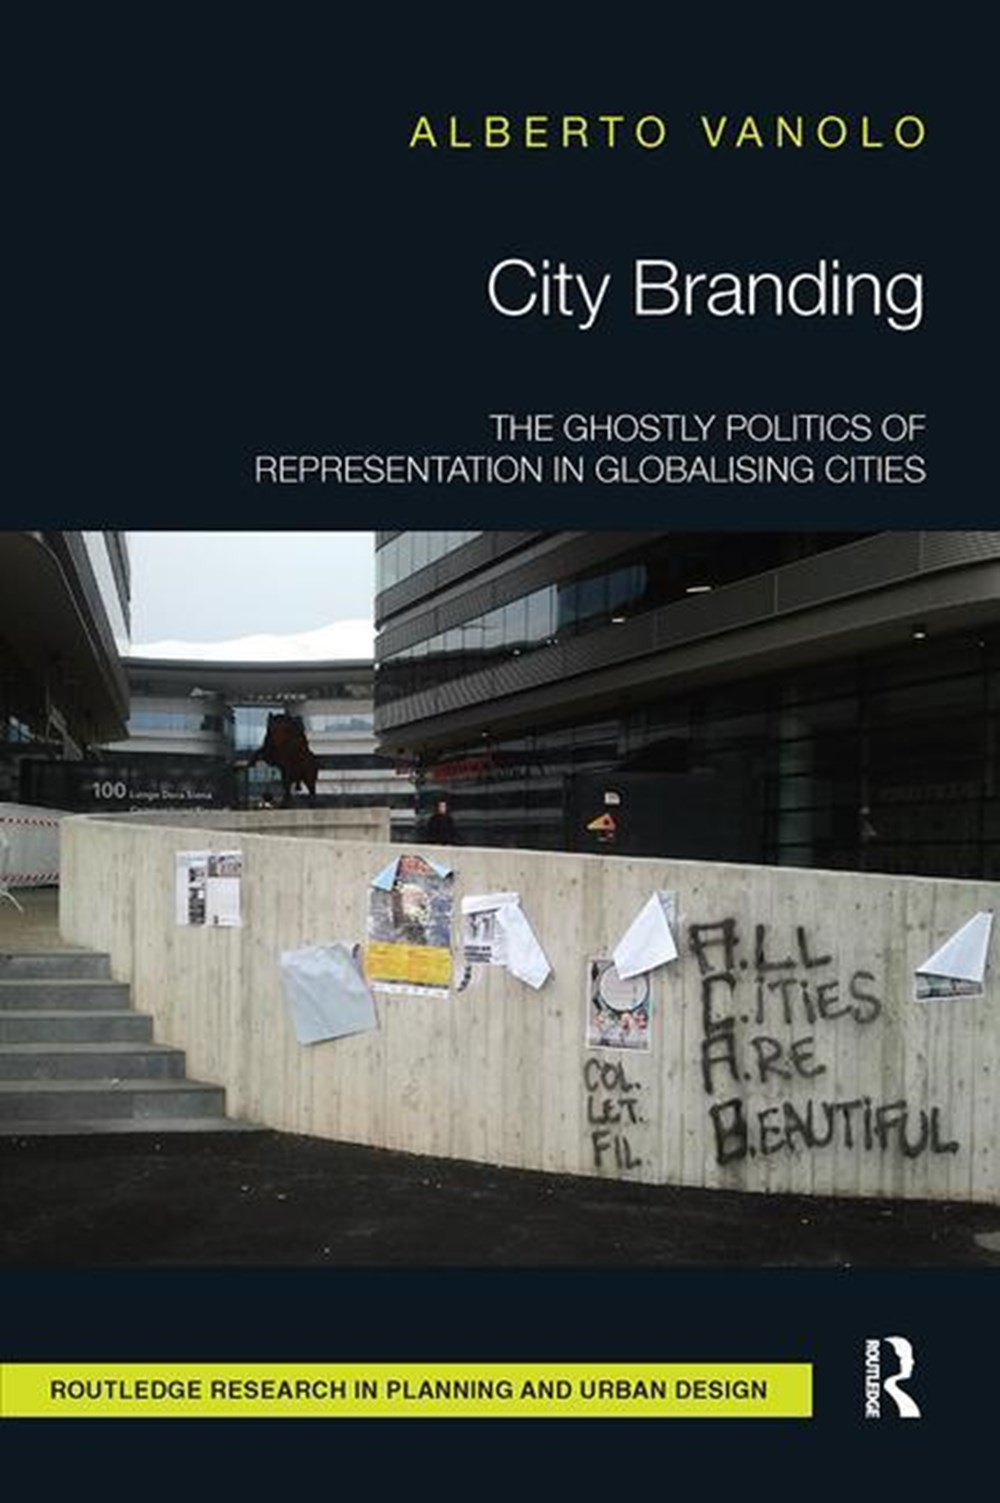 City Branding The Ghostly Politics of Representation in Globalising Cities